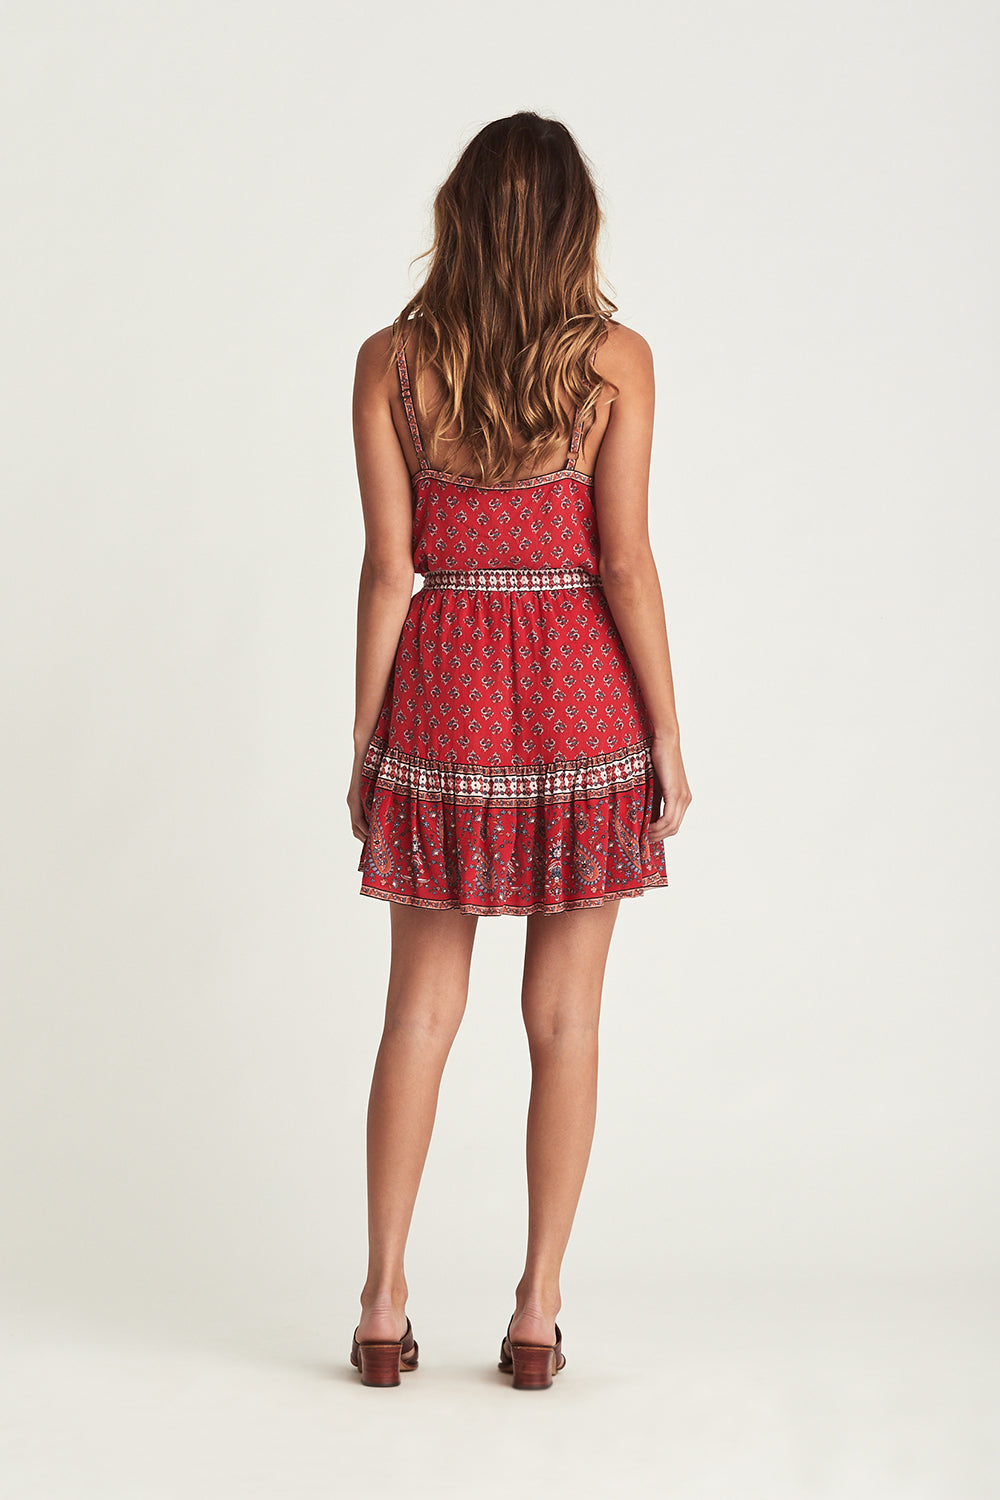 Serafina Mini Skirt in Crimson Skies